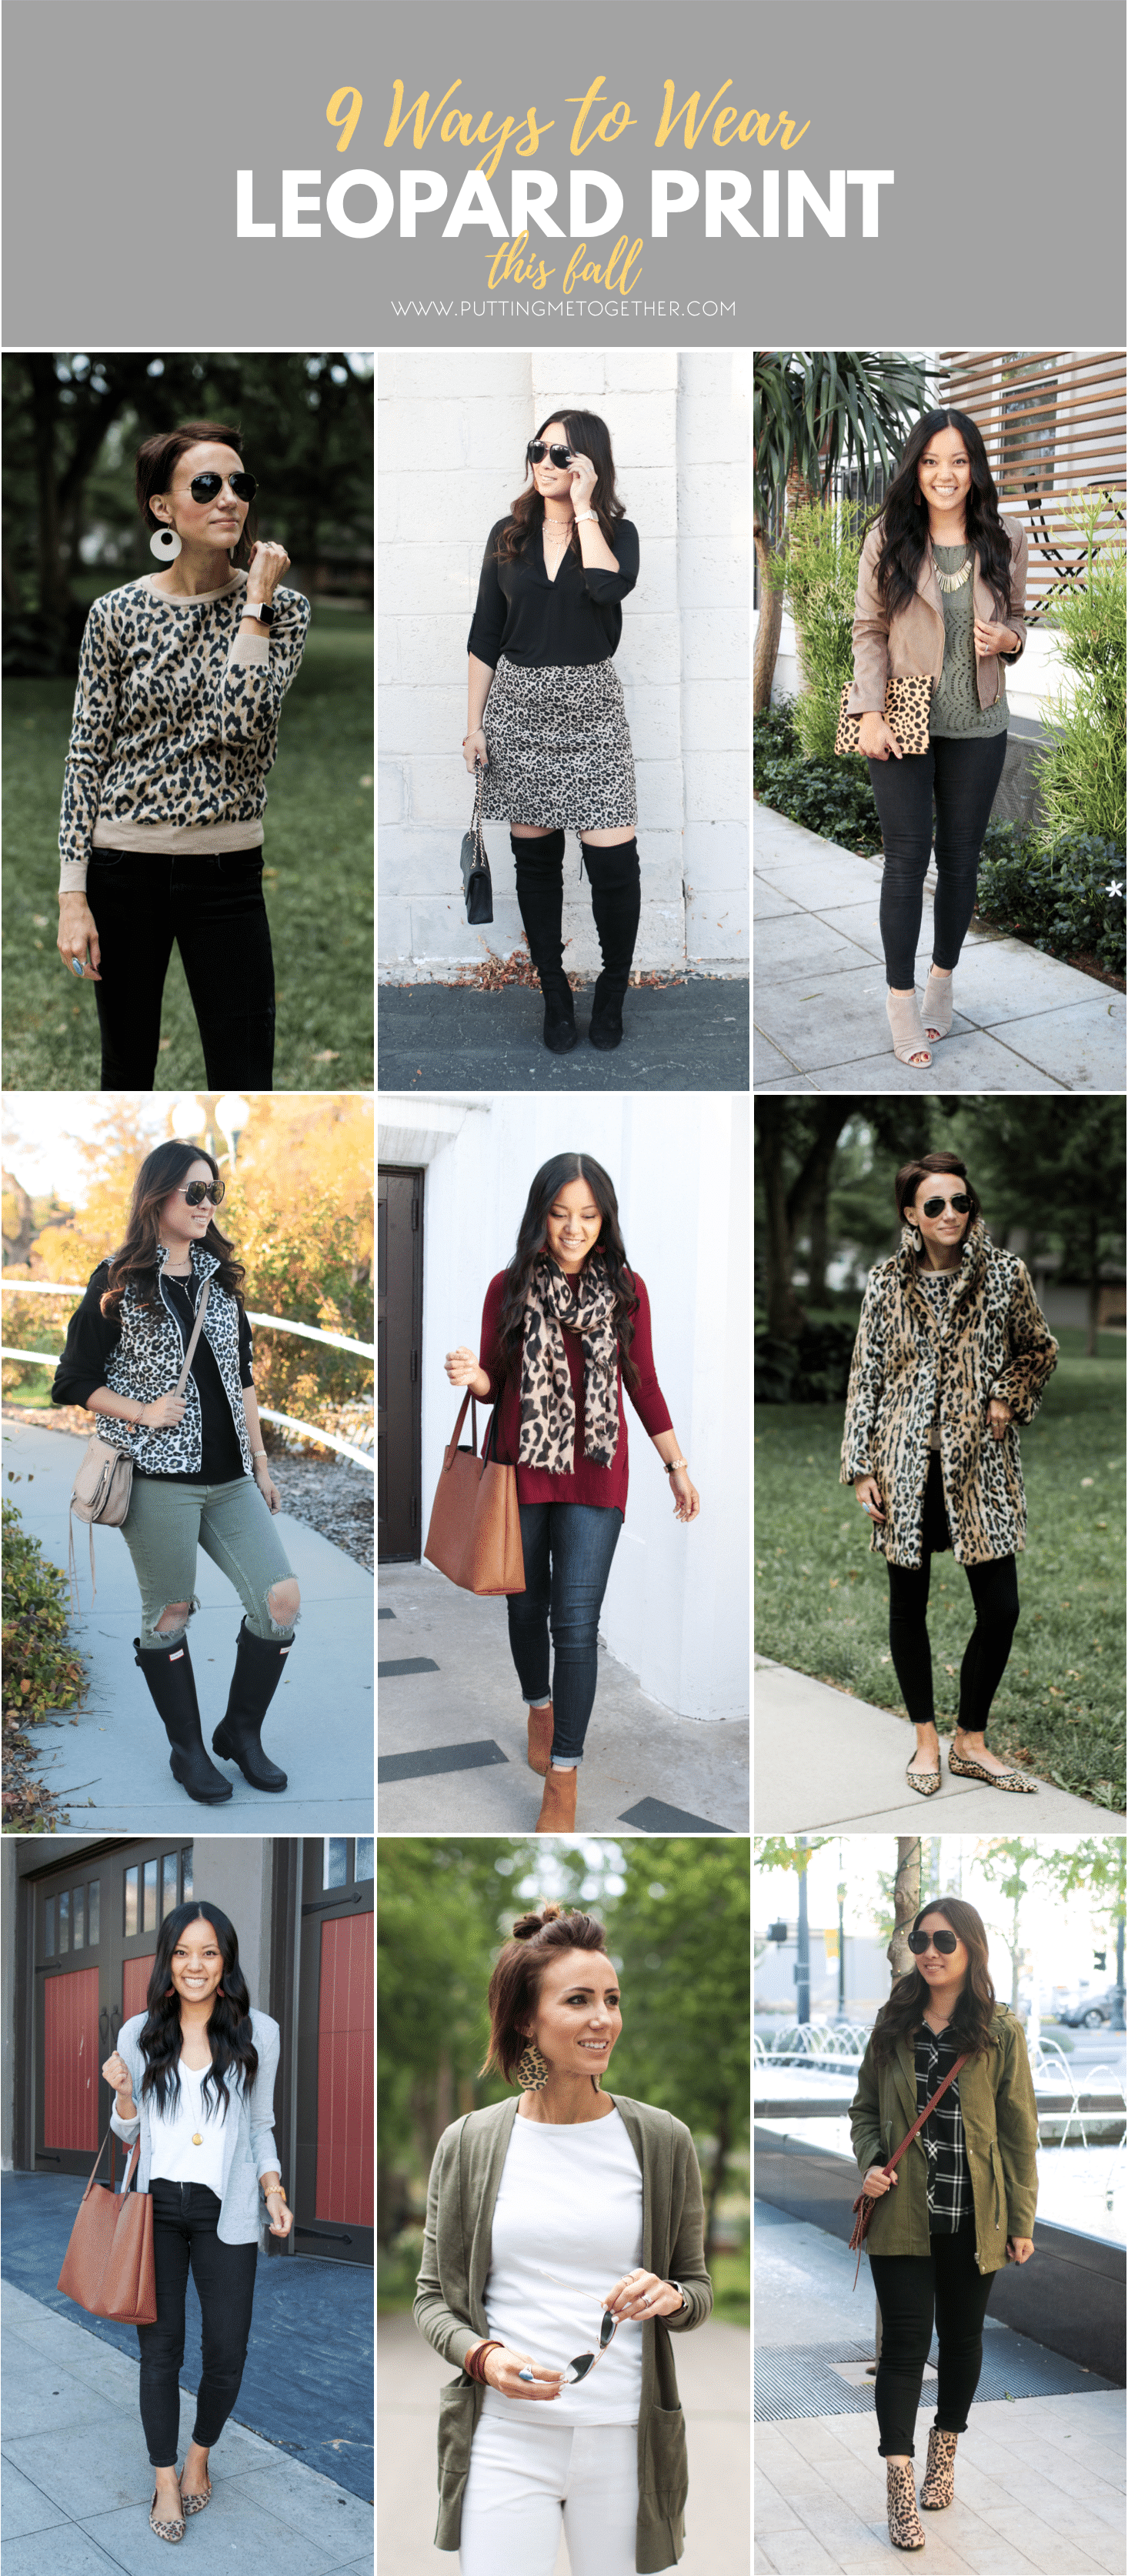 06580daf954 9 Ways to Wear Leopard Print for Fall - Putting Me Together